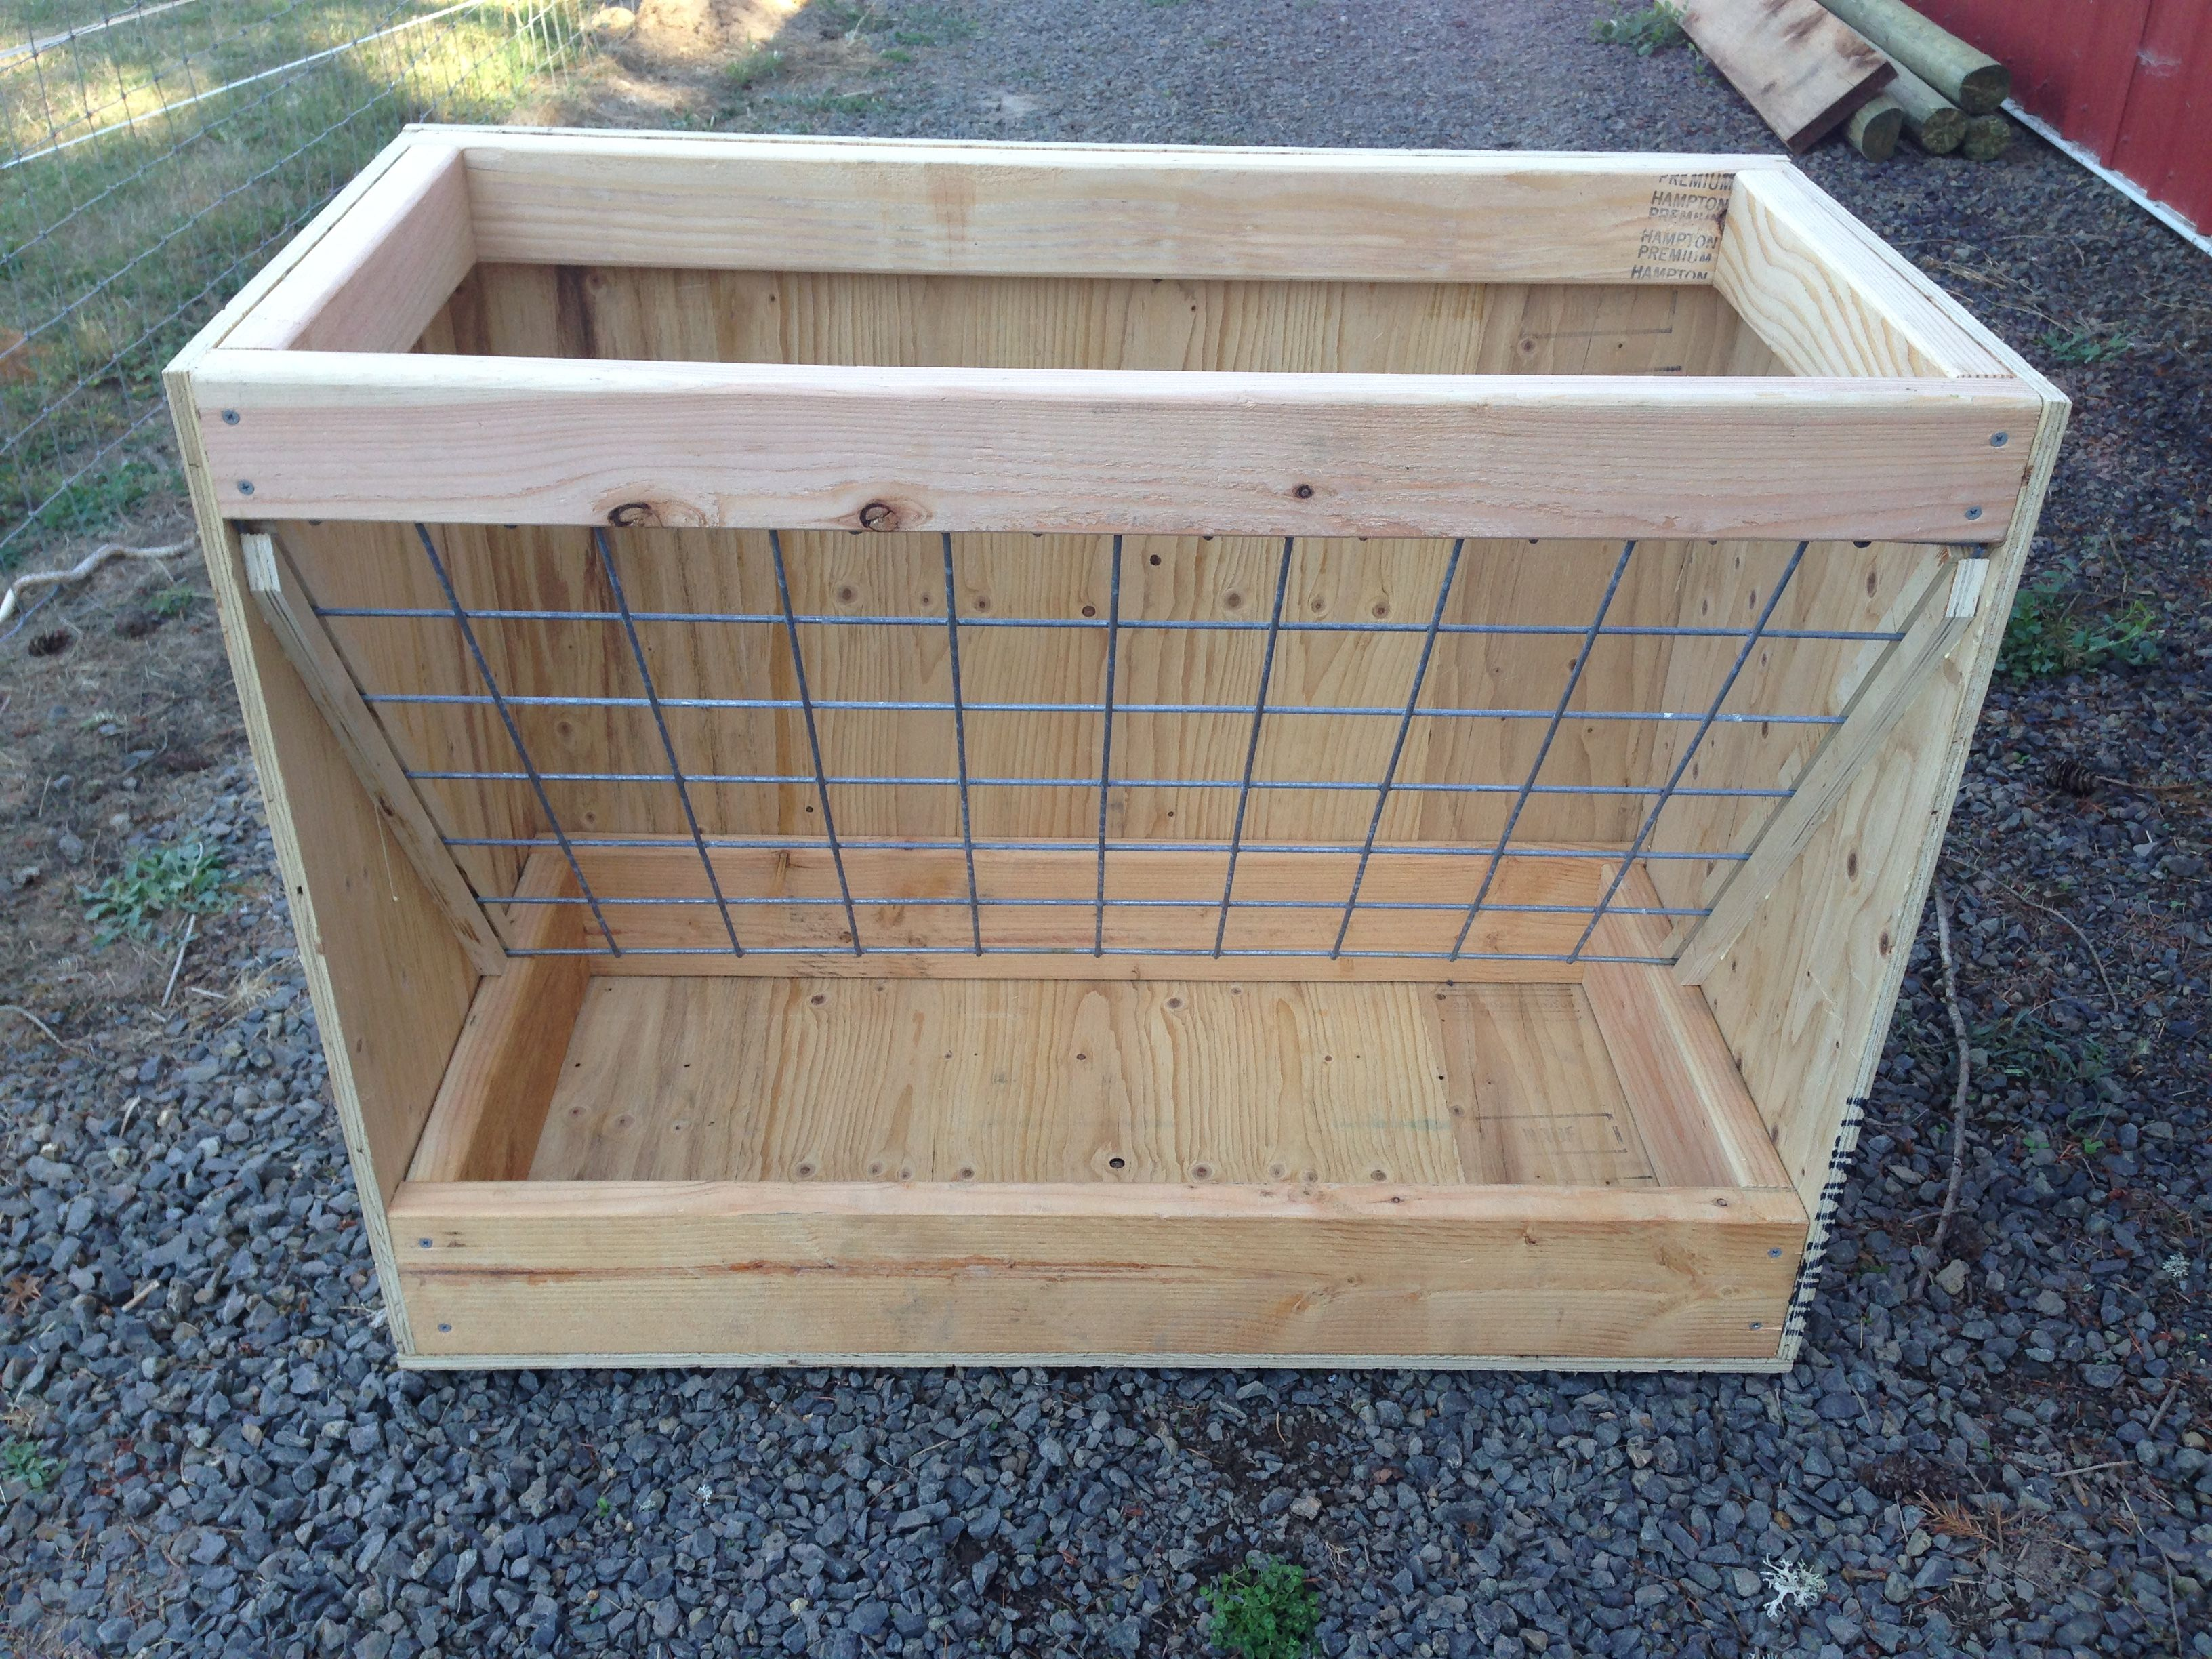 Homemade Goat Feeders For Sale | homestead | Goat feeder